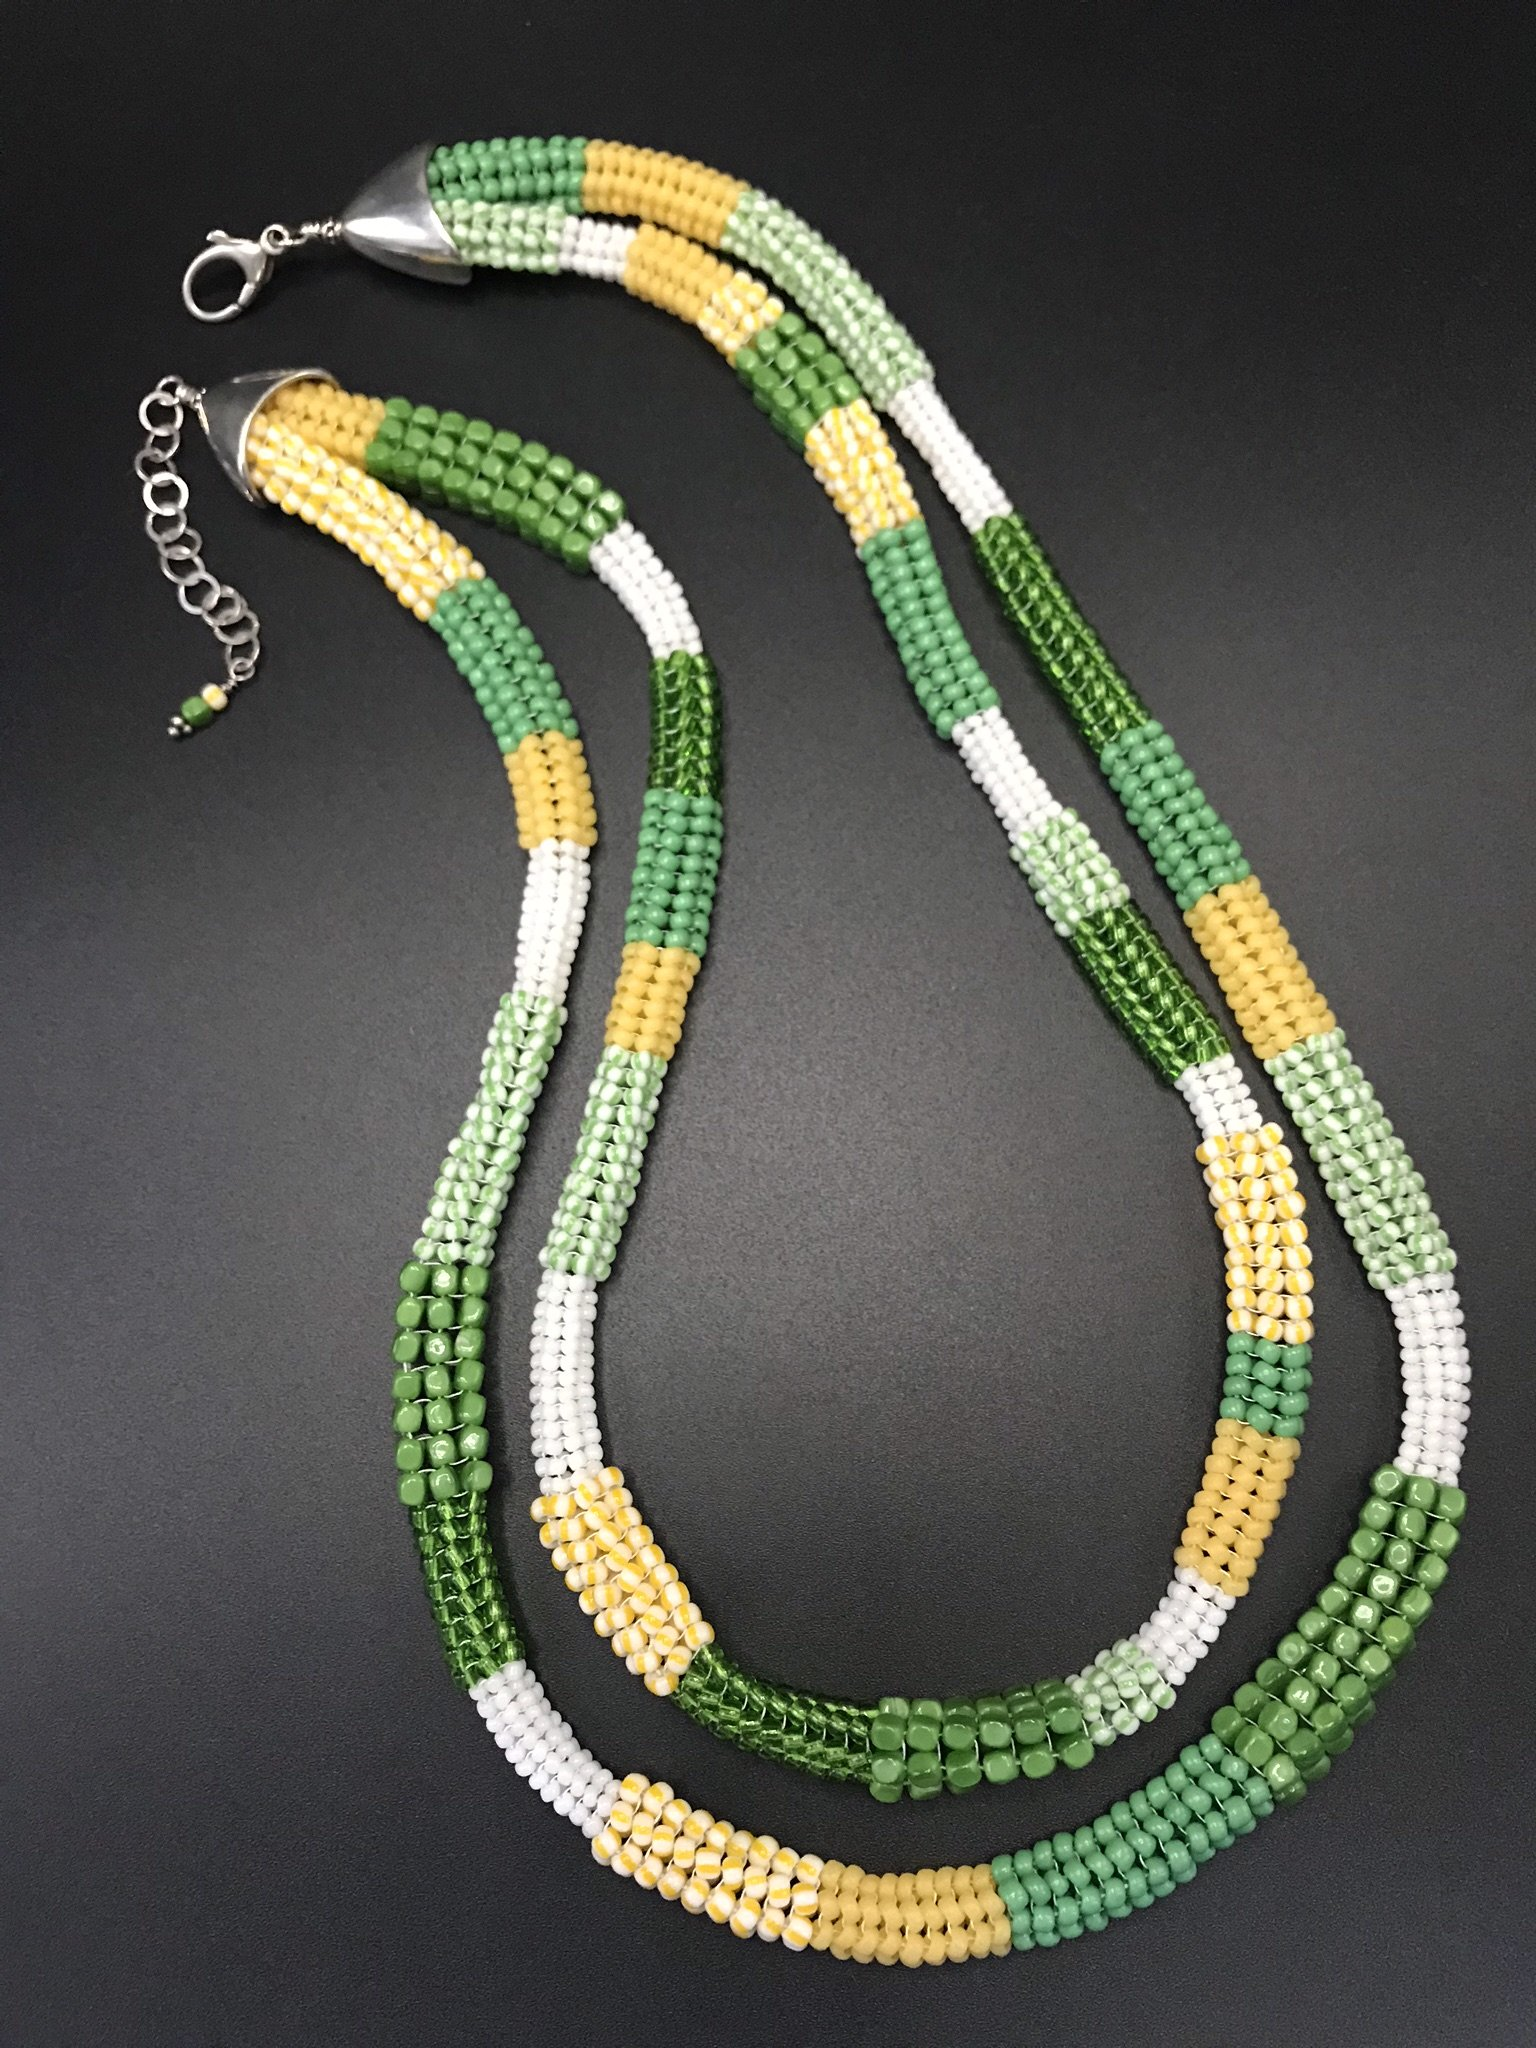 Green And White Herringbone Necklace By Sher Berman